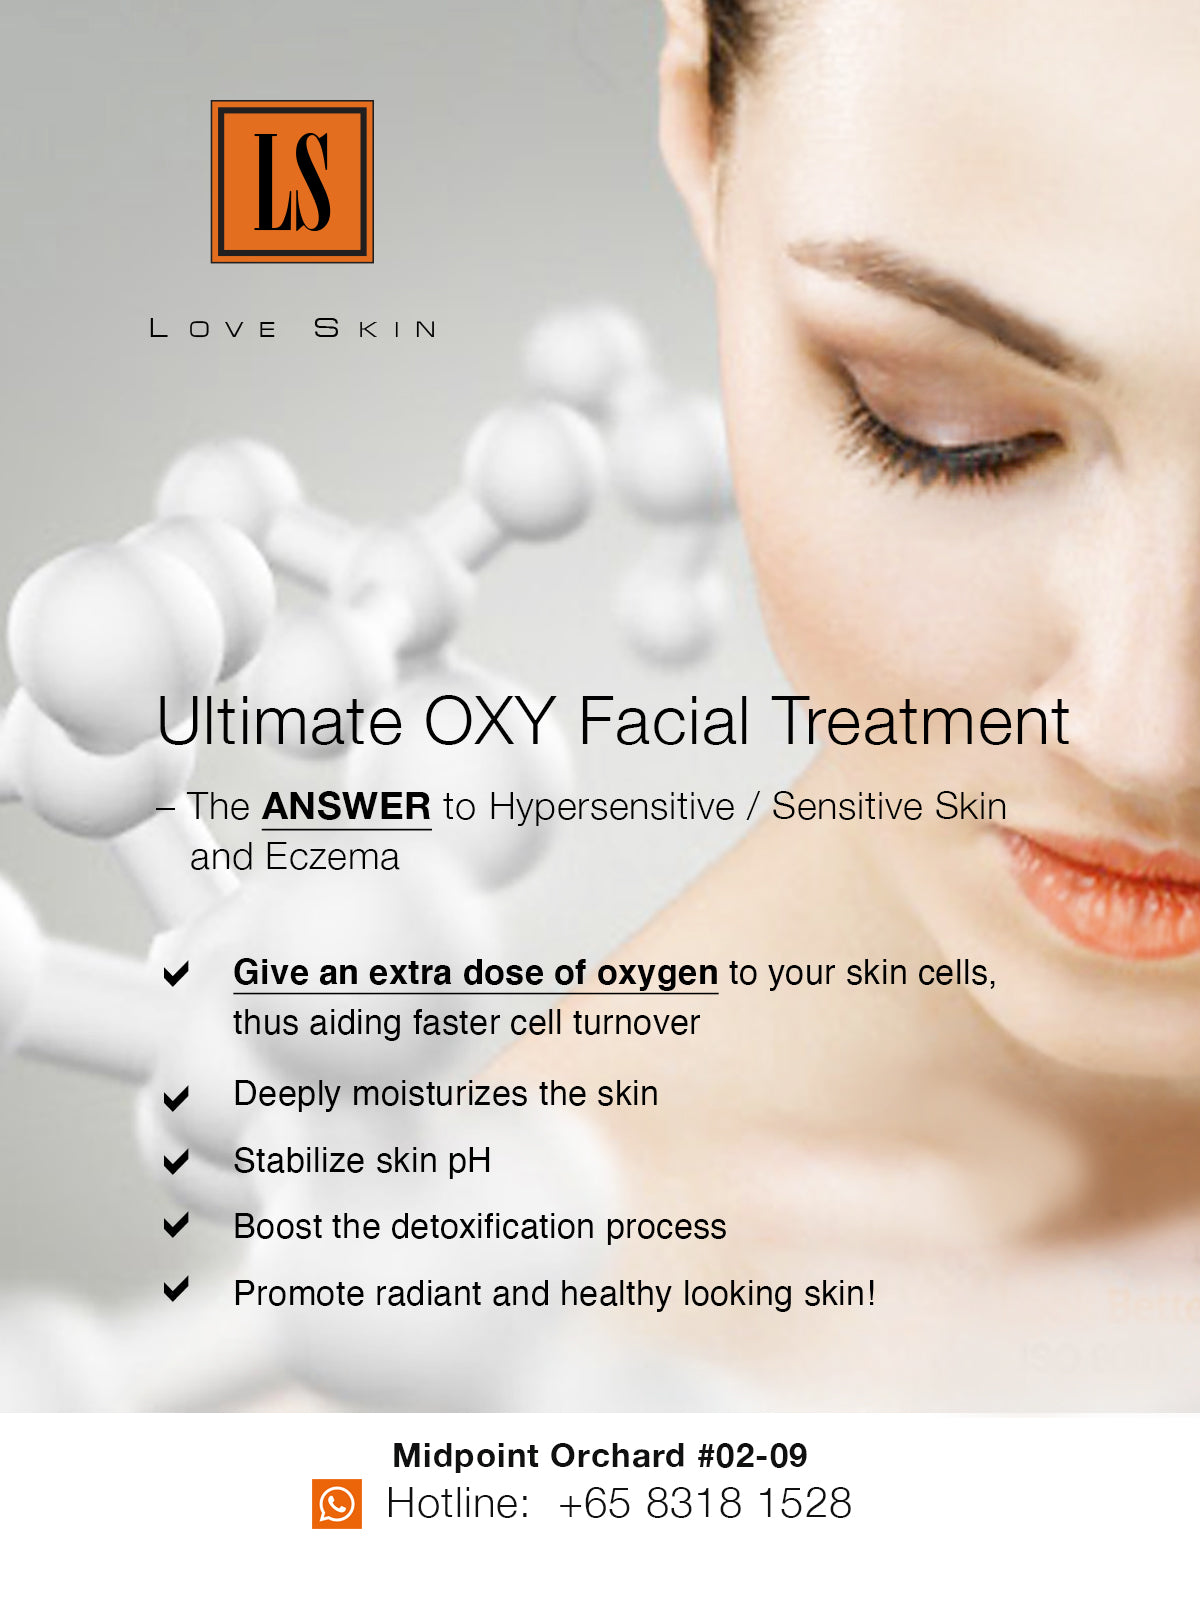 [S190014] Ultimate OXY Facial Treatment - Sensitive Skin Treatment with 7 GREAT Benefits!